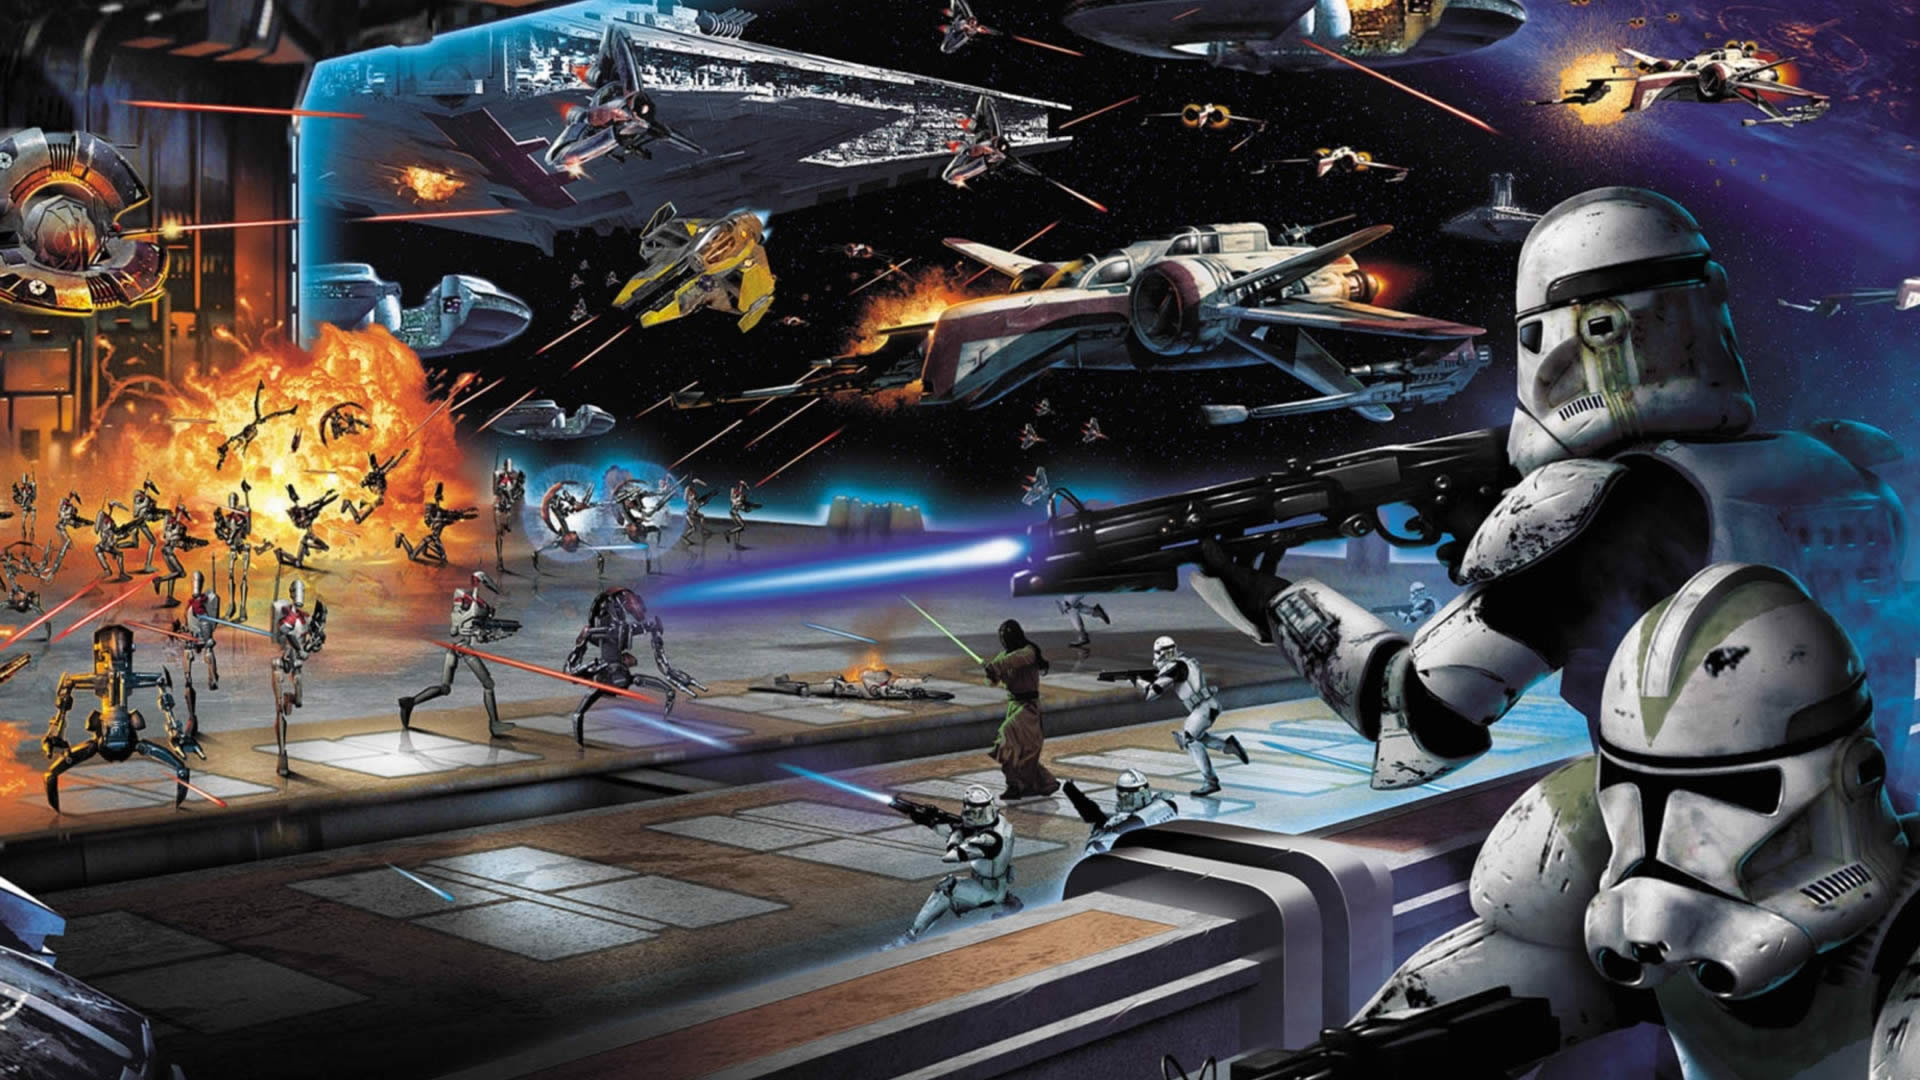 star wars battlefront wallpaper coolvibe digital artcoolvibe